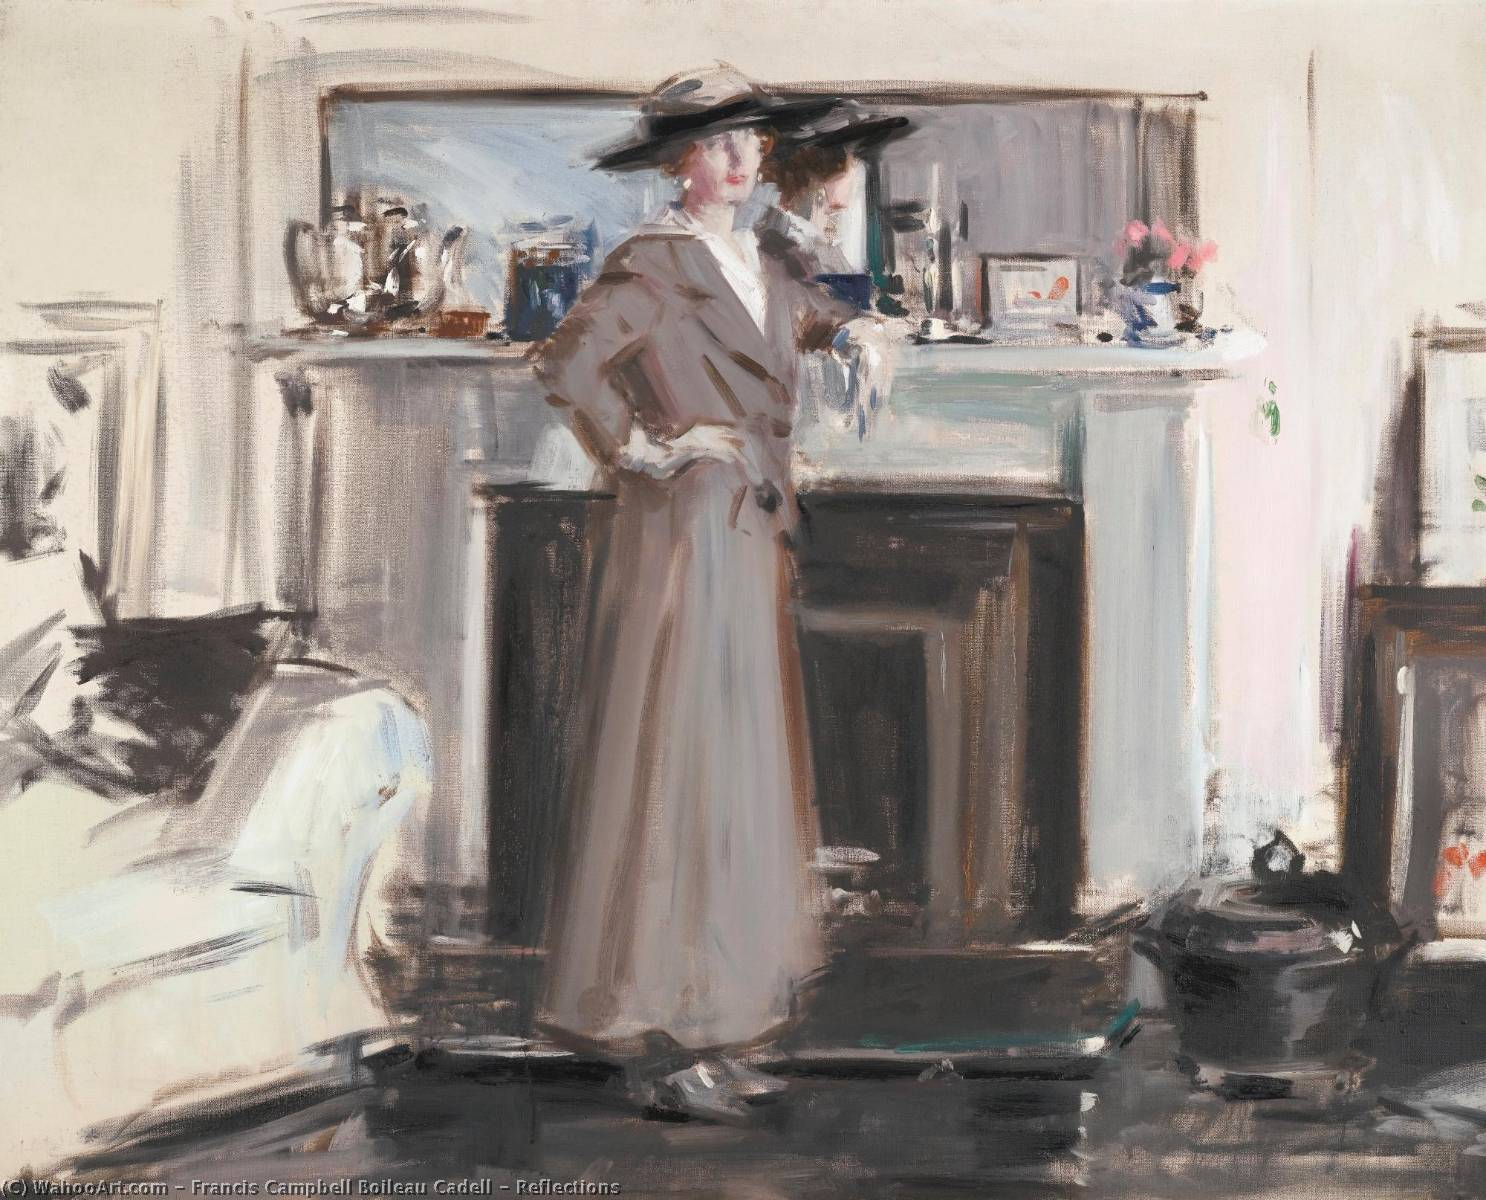 Reflections by Francis Campbell Boileau Cadell (1883-1937) | Art Reproduction | WahooArt.com